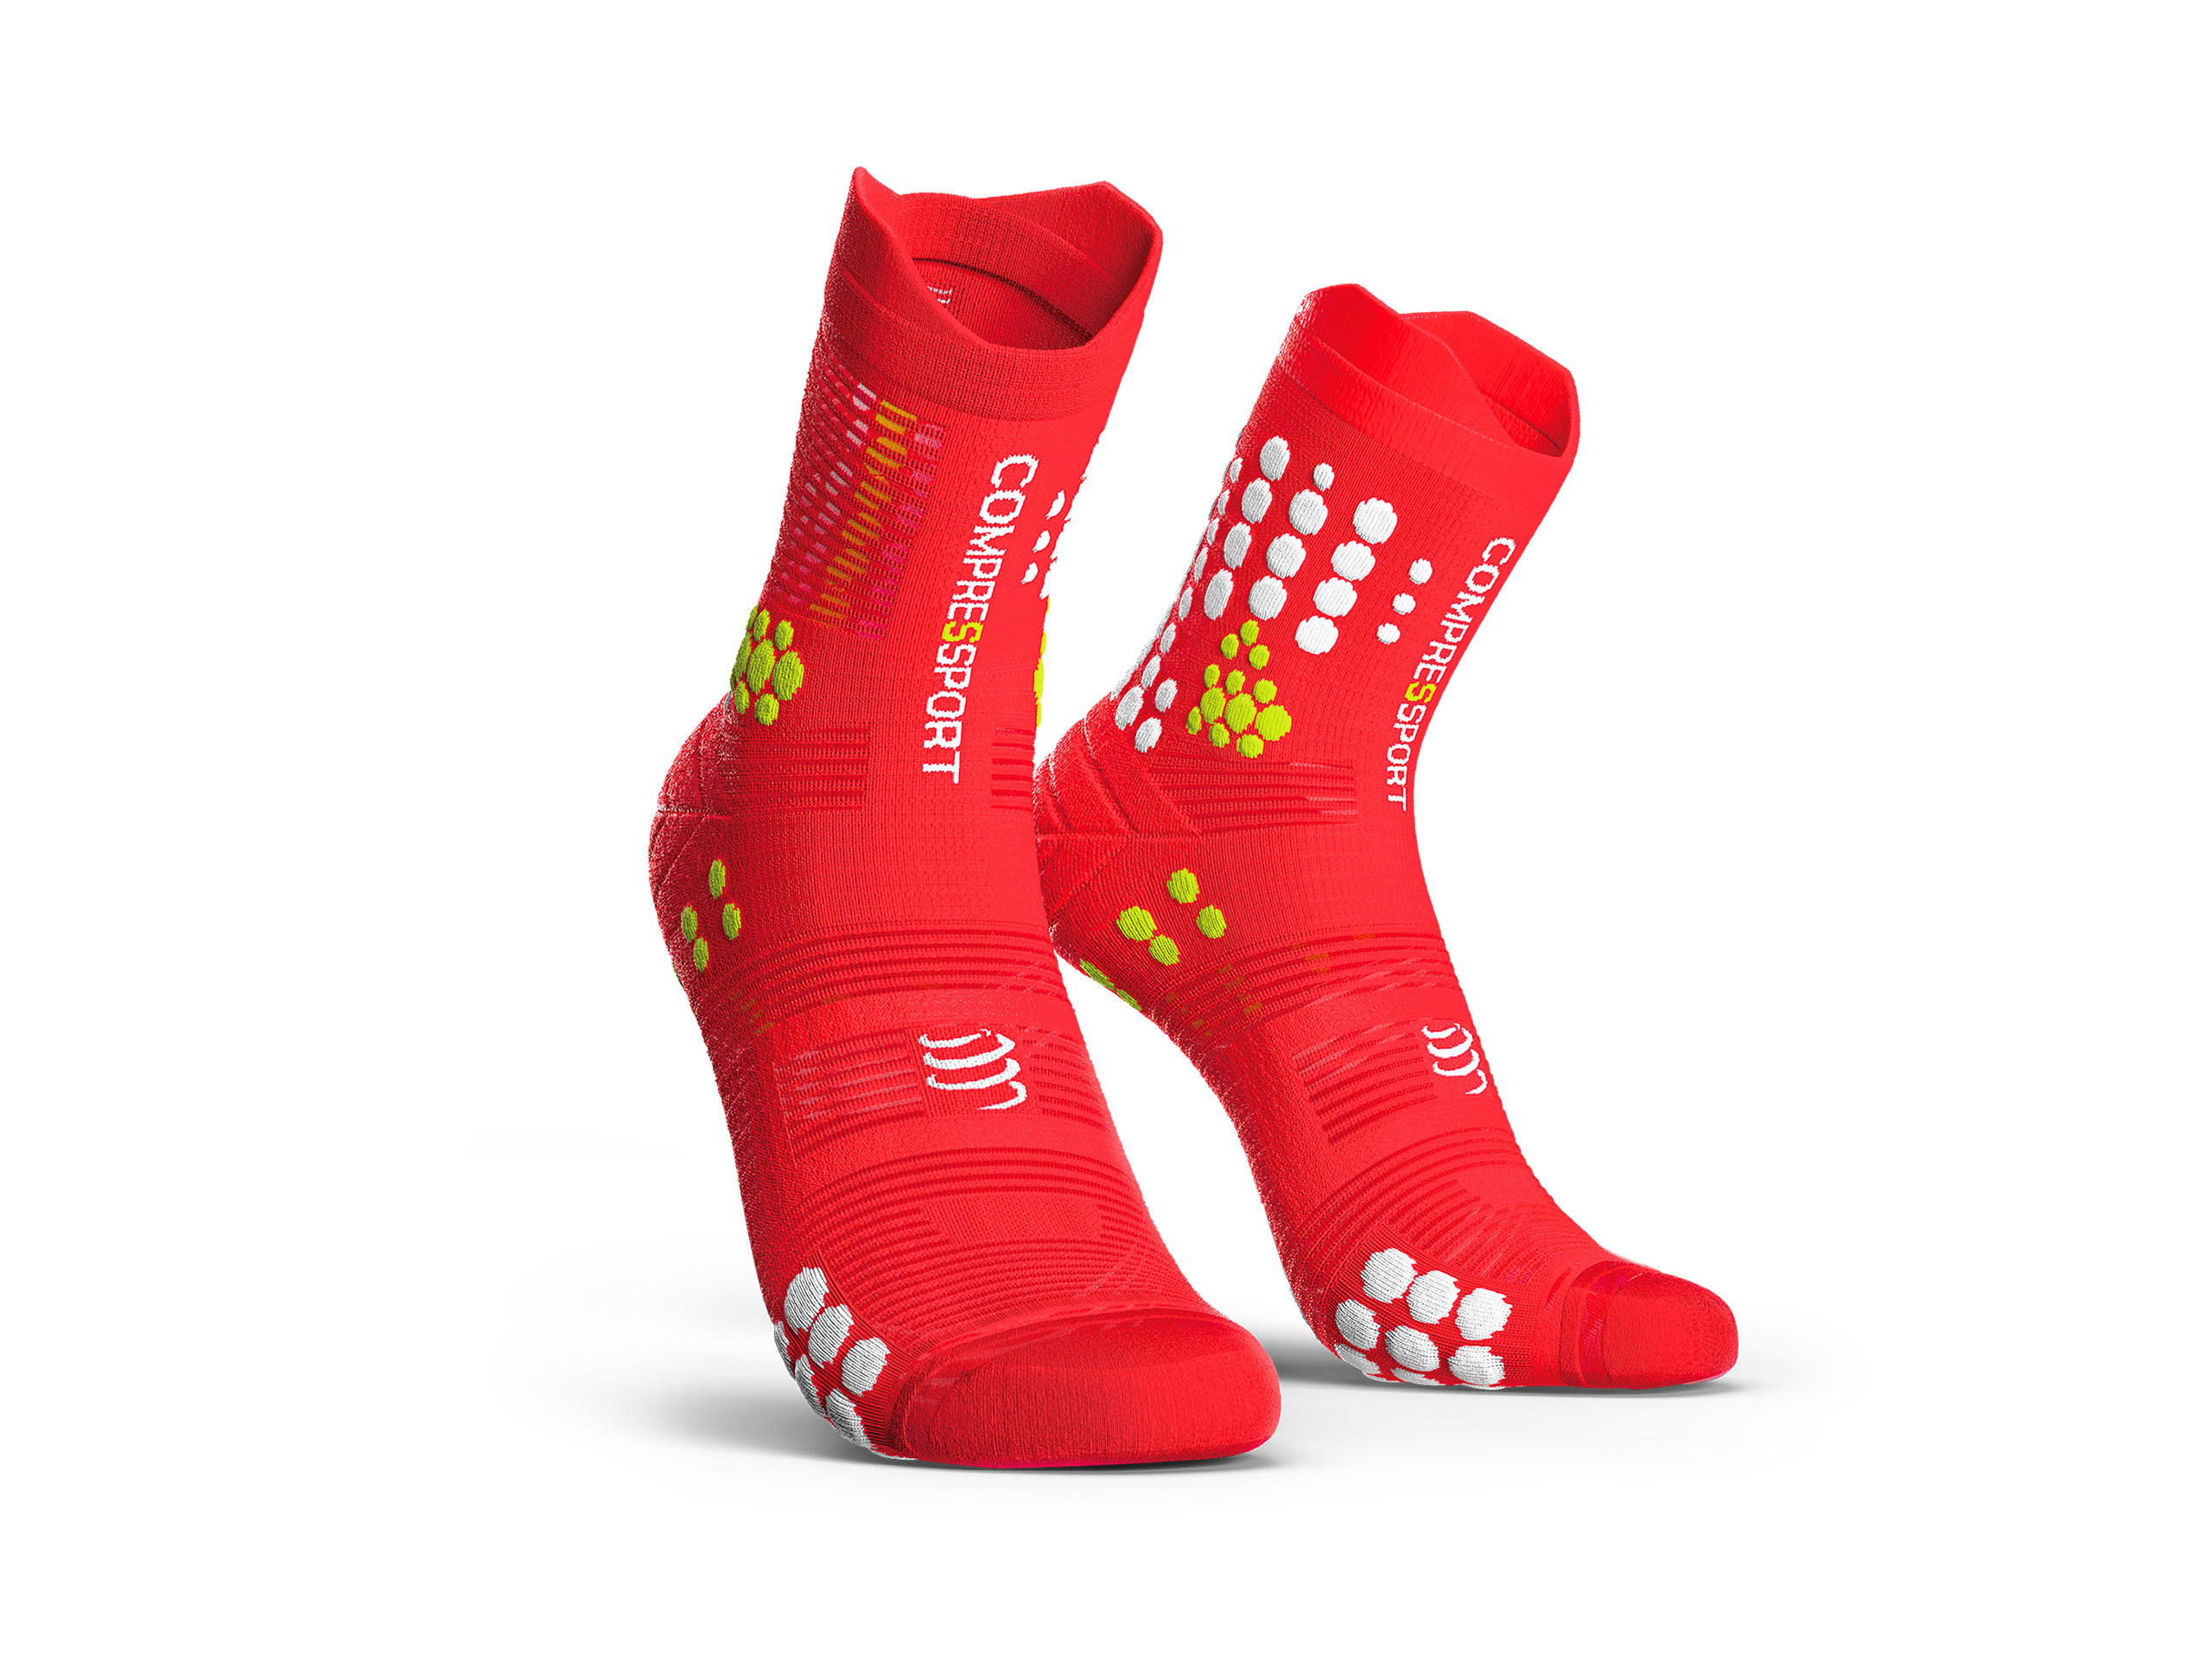 Pro Racing Socks v3.0 Trail RED/WHITE